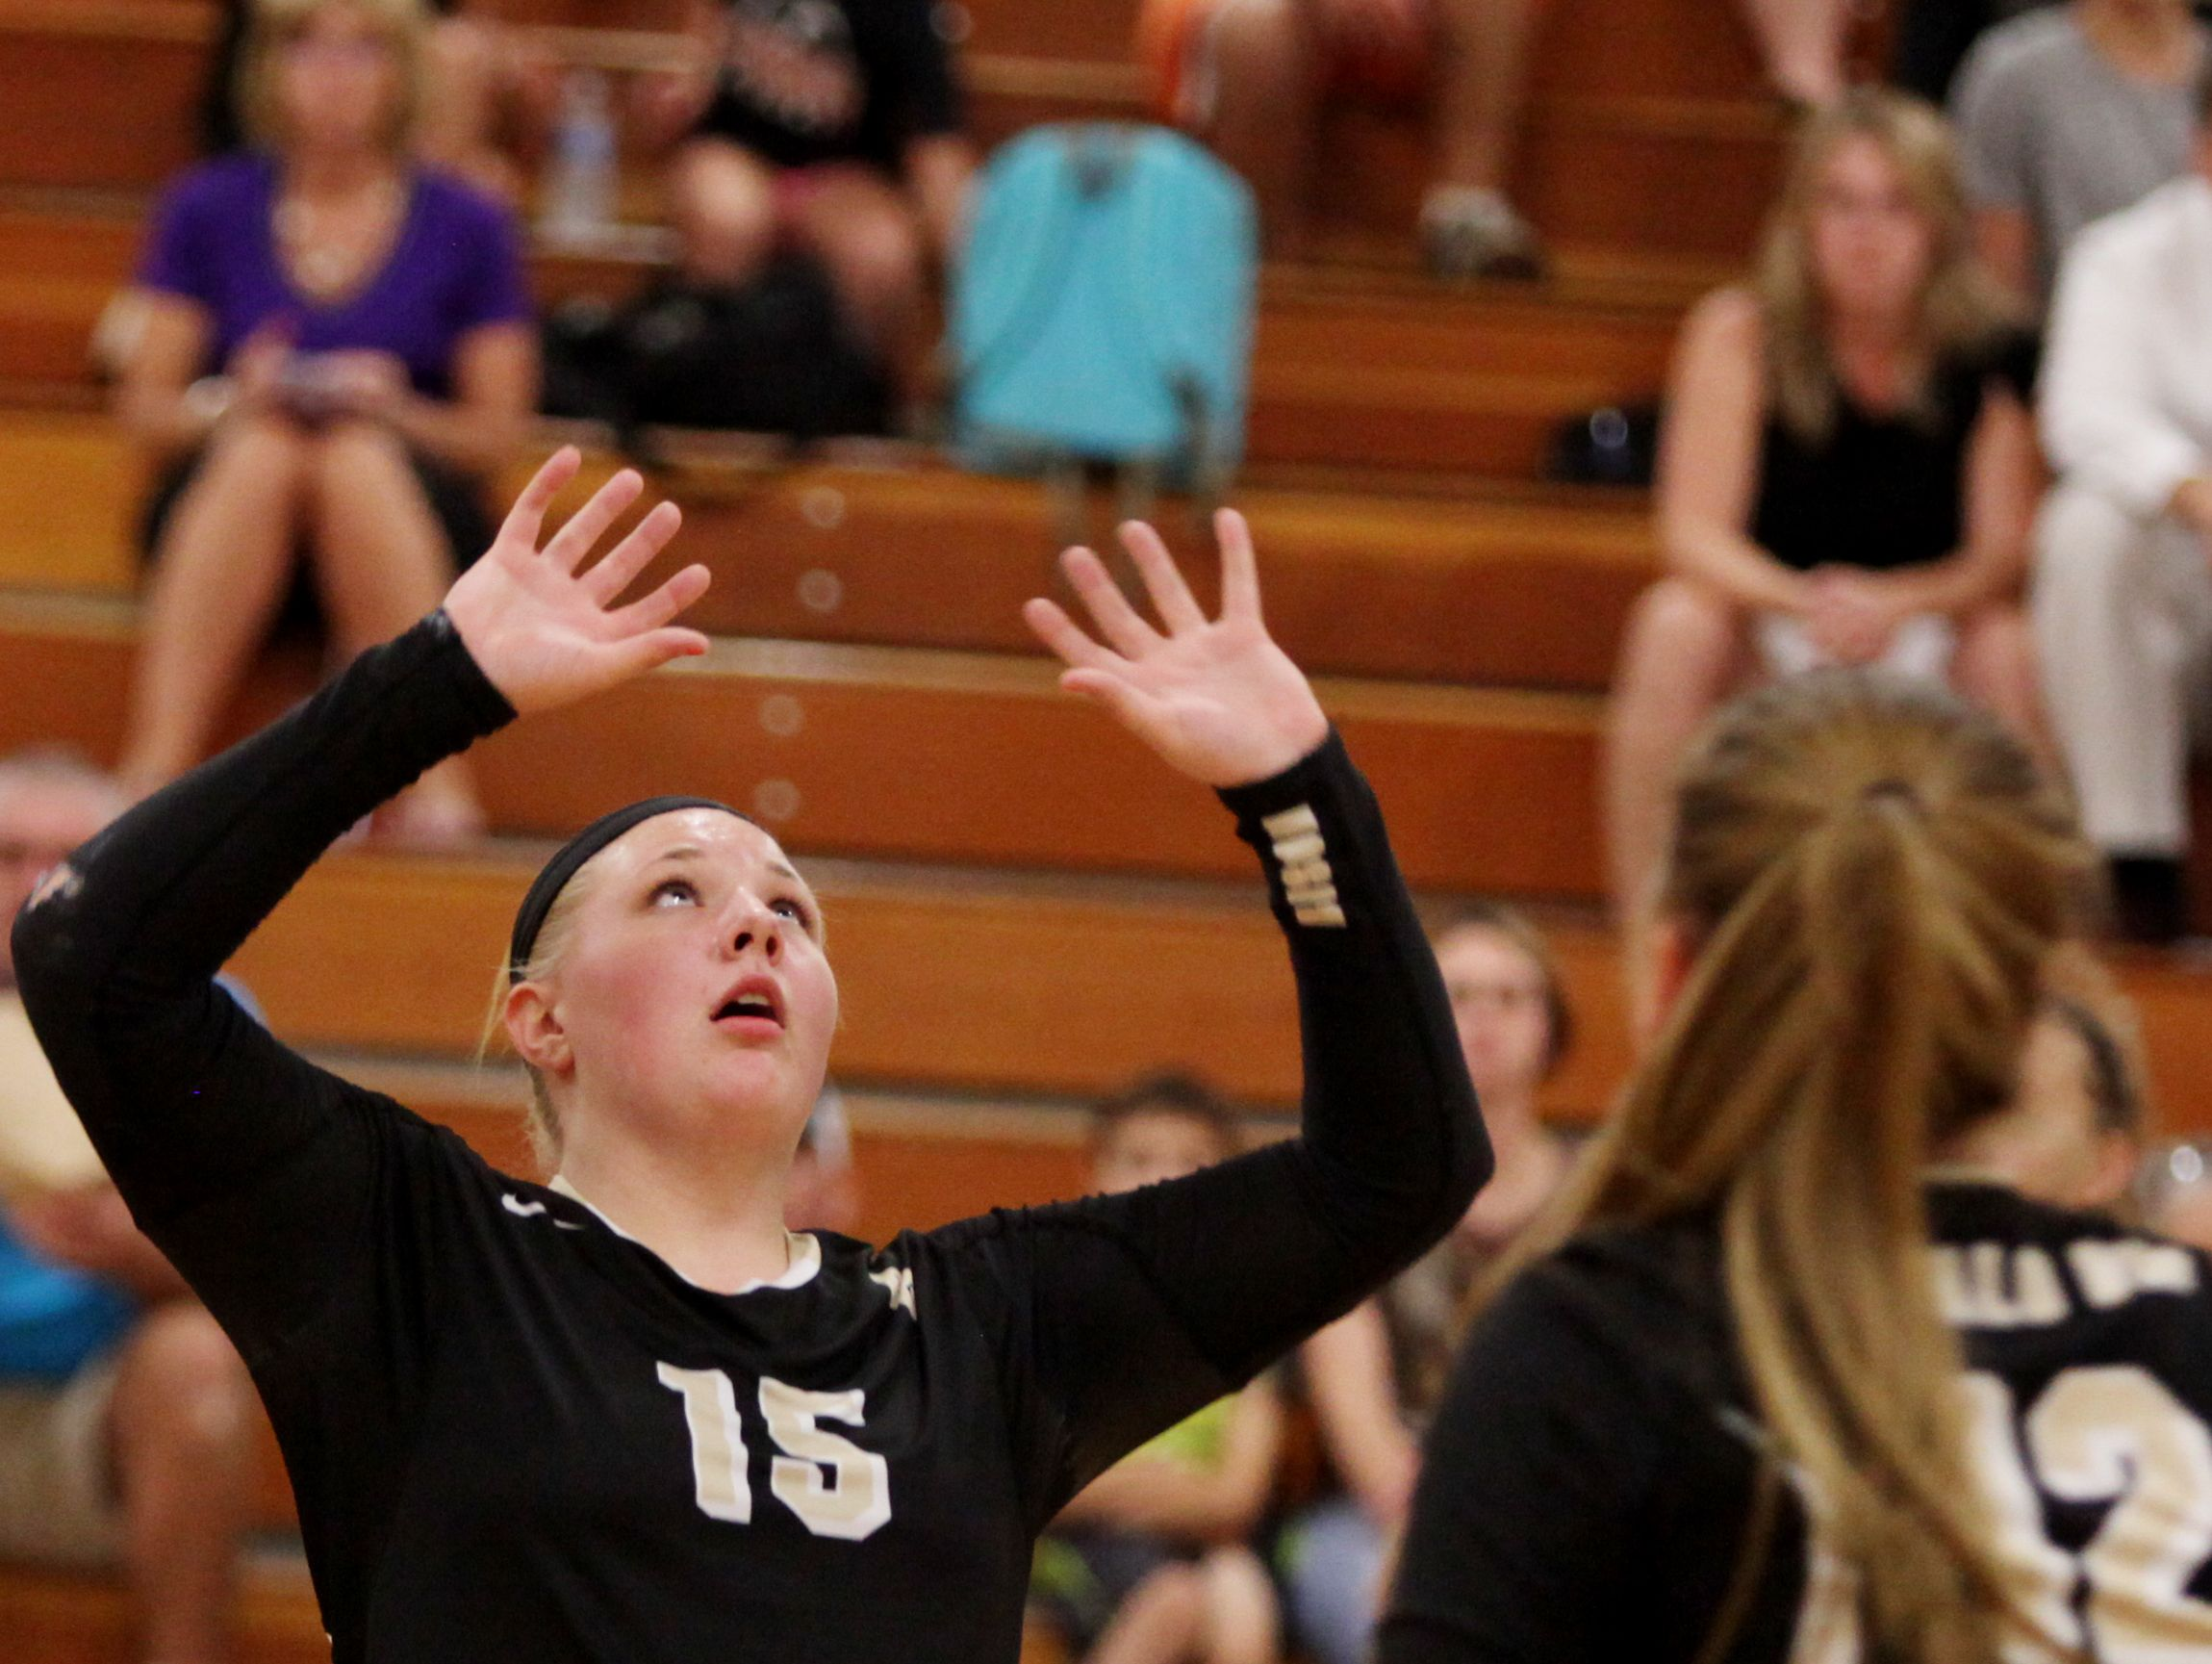 Buffalo Gap's Camille Ashby (15) was named Shenandoah District player of the year.